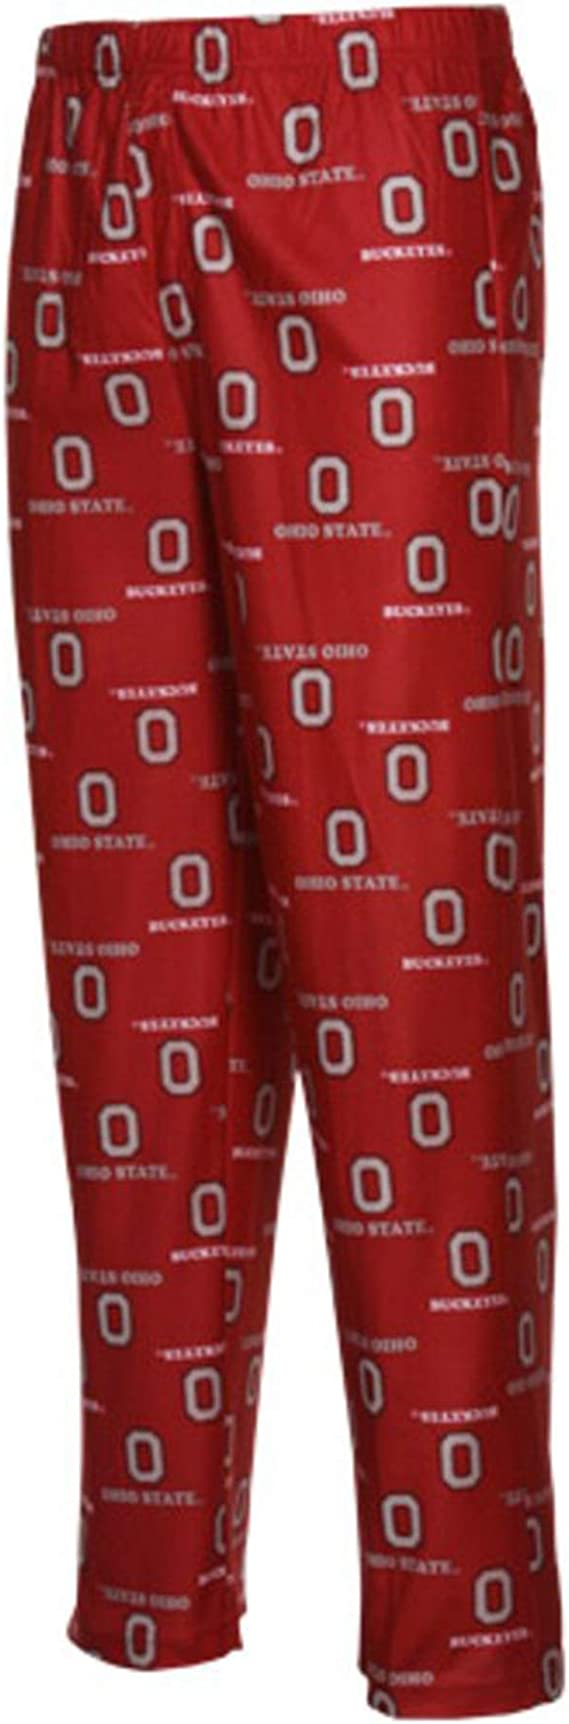 7-16 Ohio State Buckeyes Classic Play Leggings, Outerstuff NCAA Youth Girls